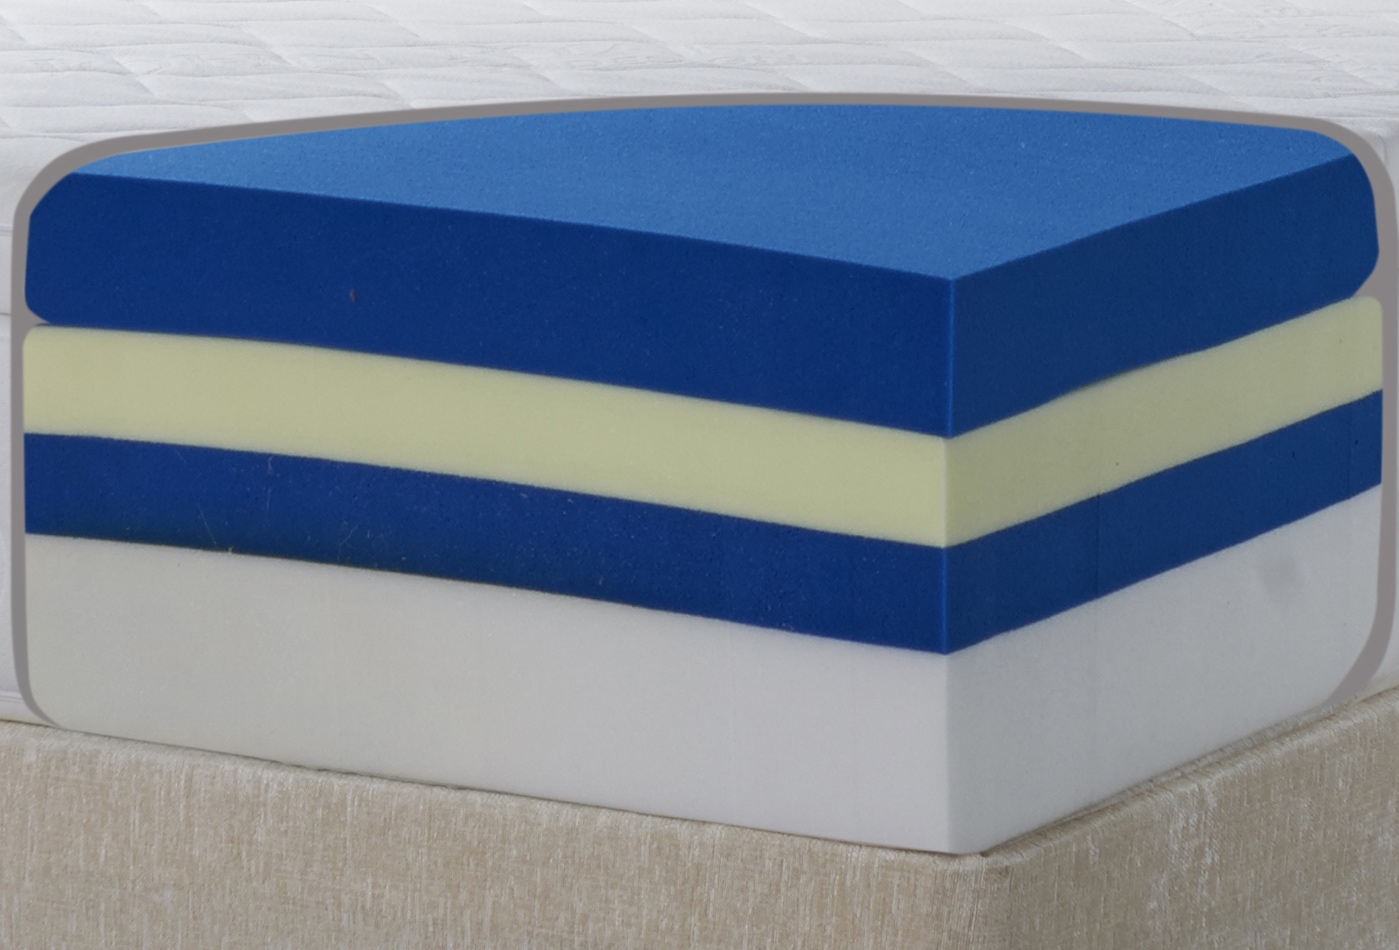 How are memory foam mattresses made